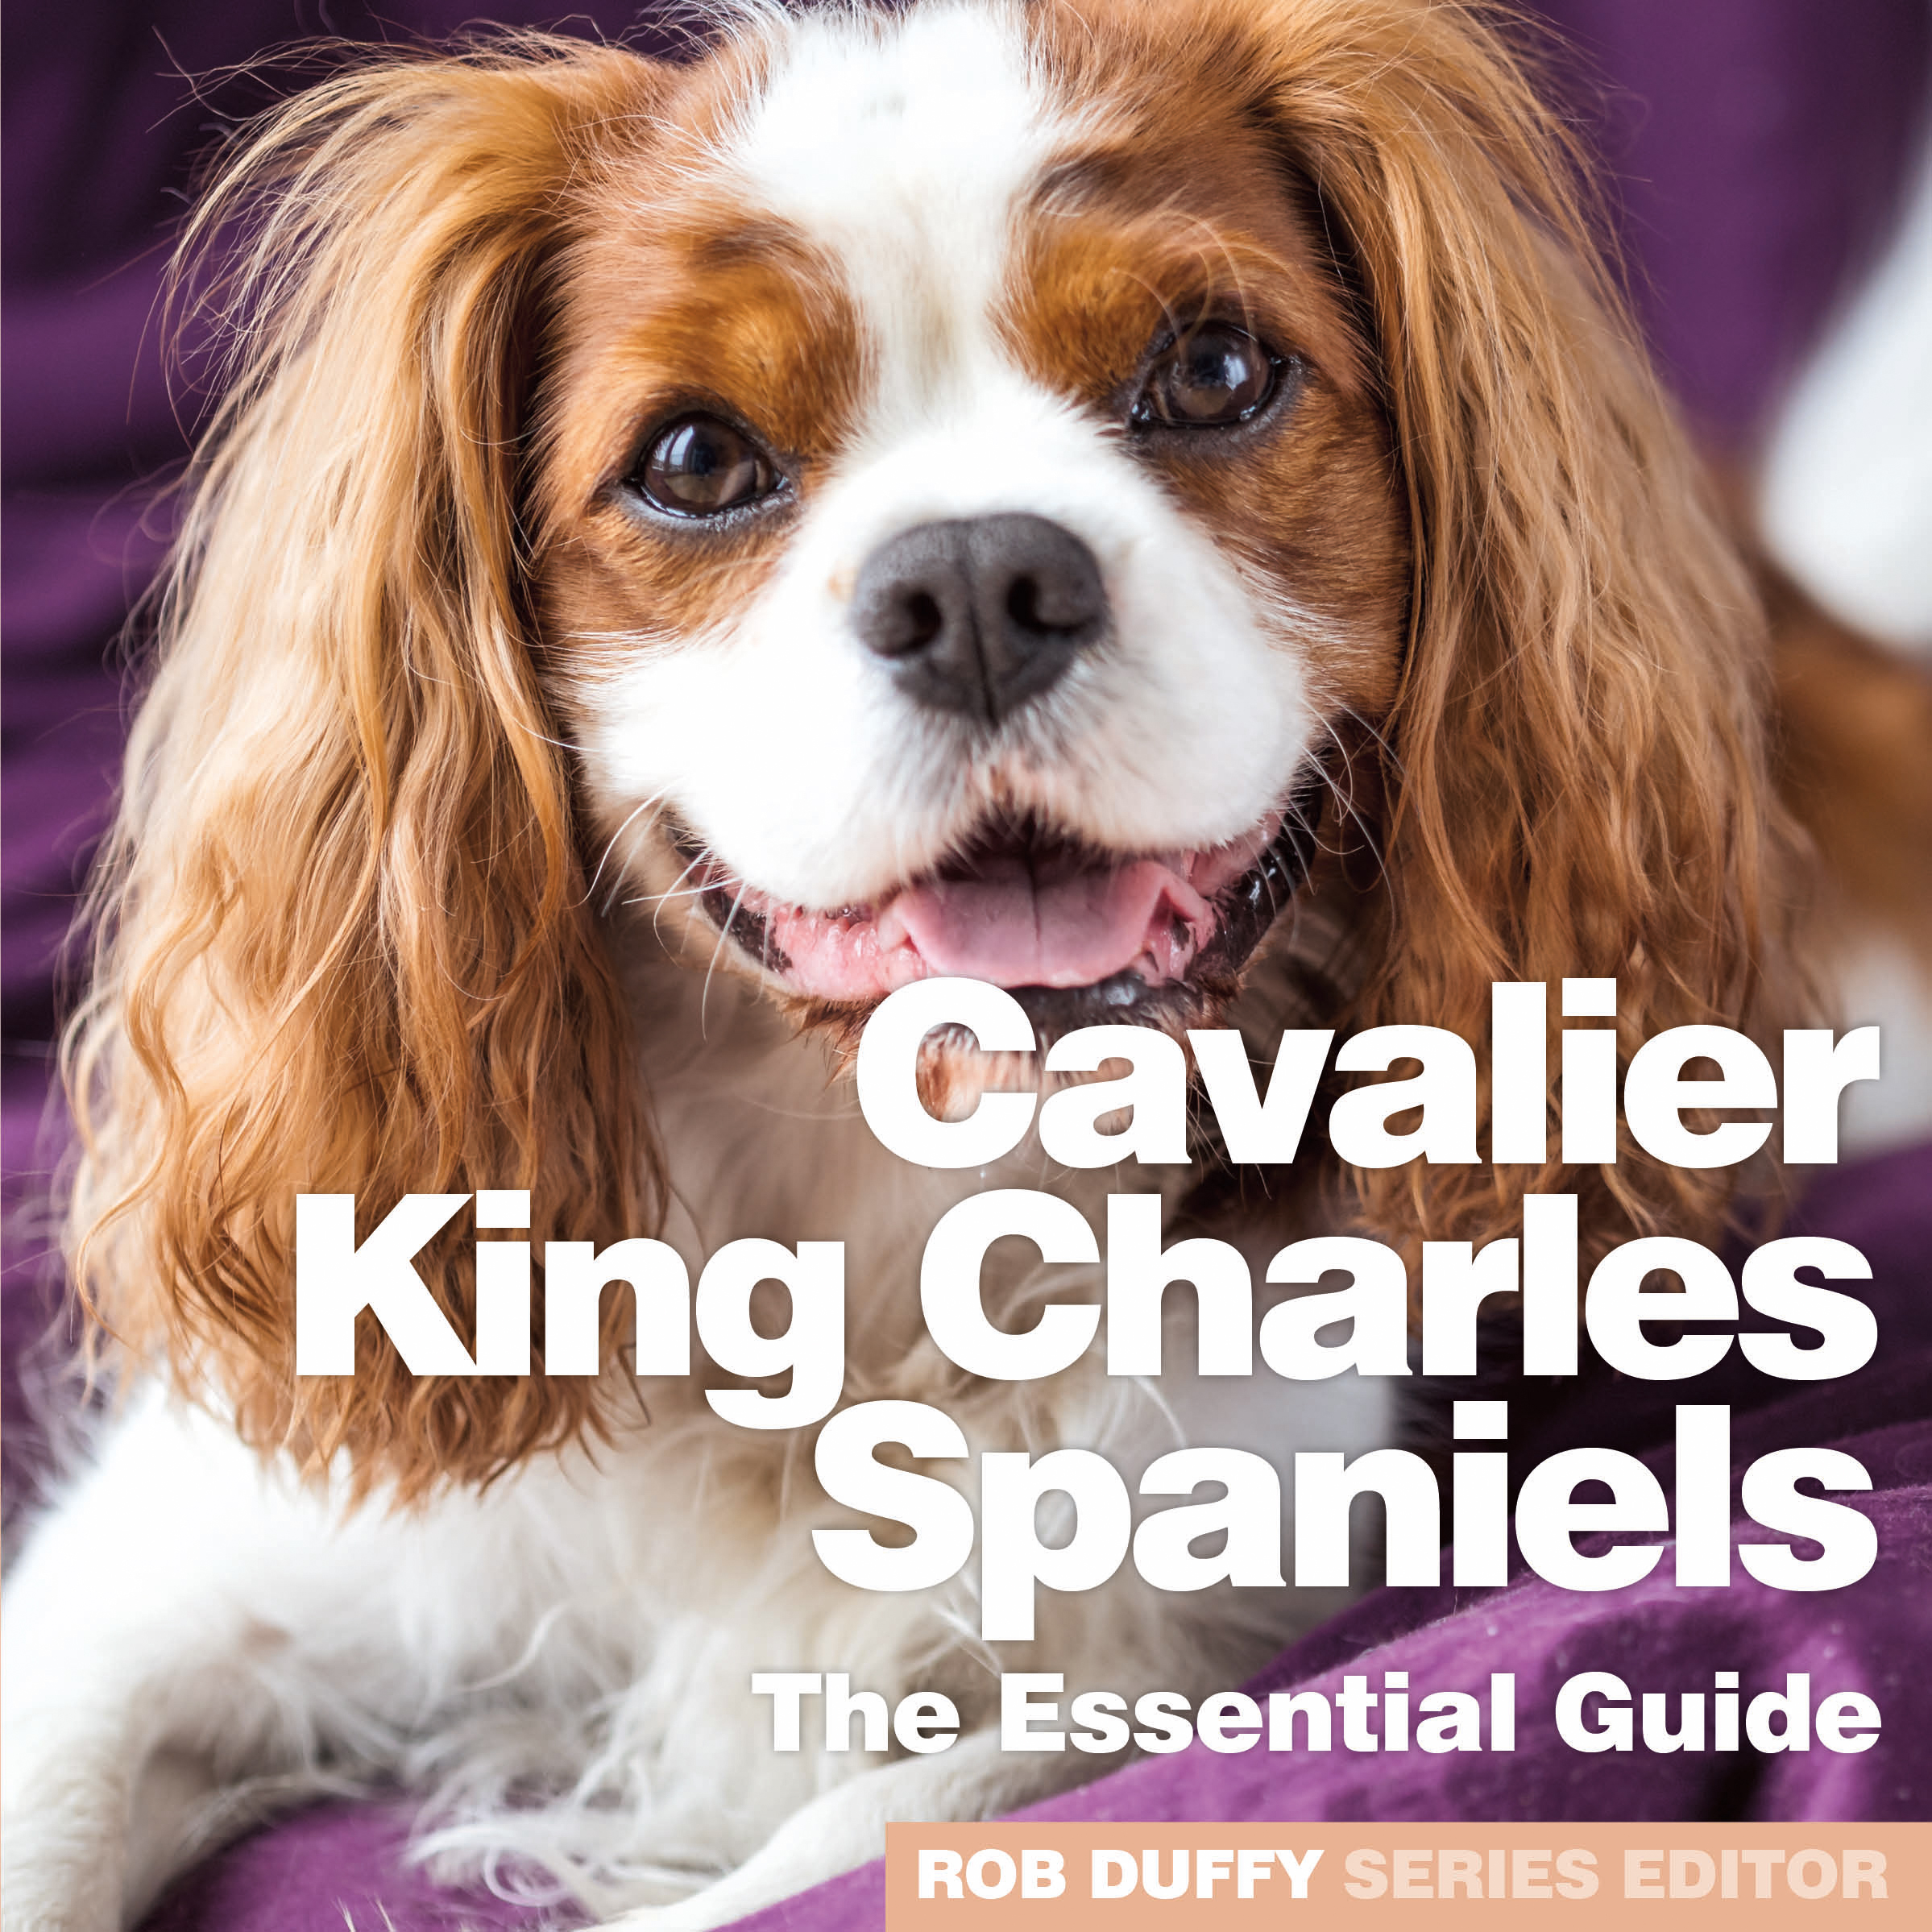 Cavalier King Charles Spaniels The Essential Guide